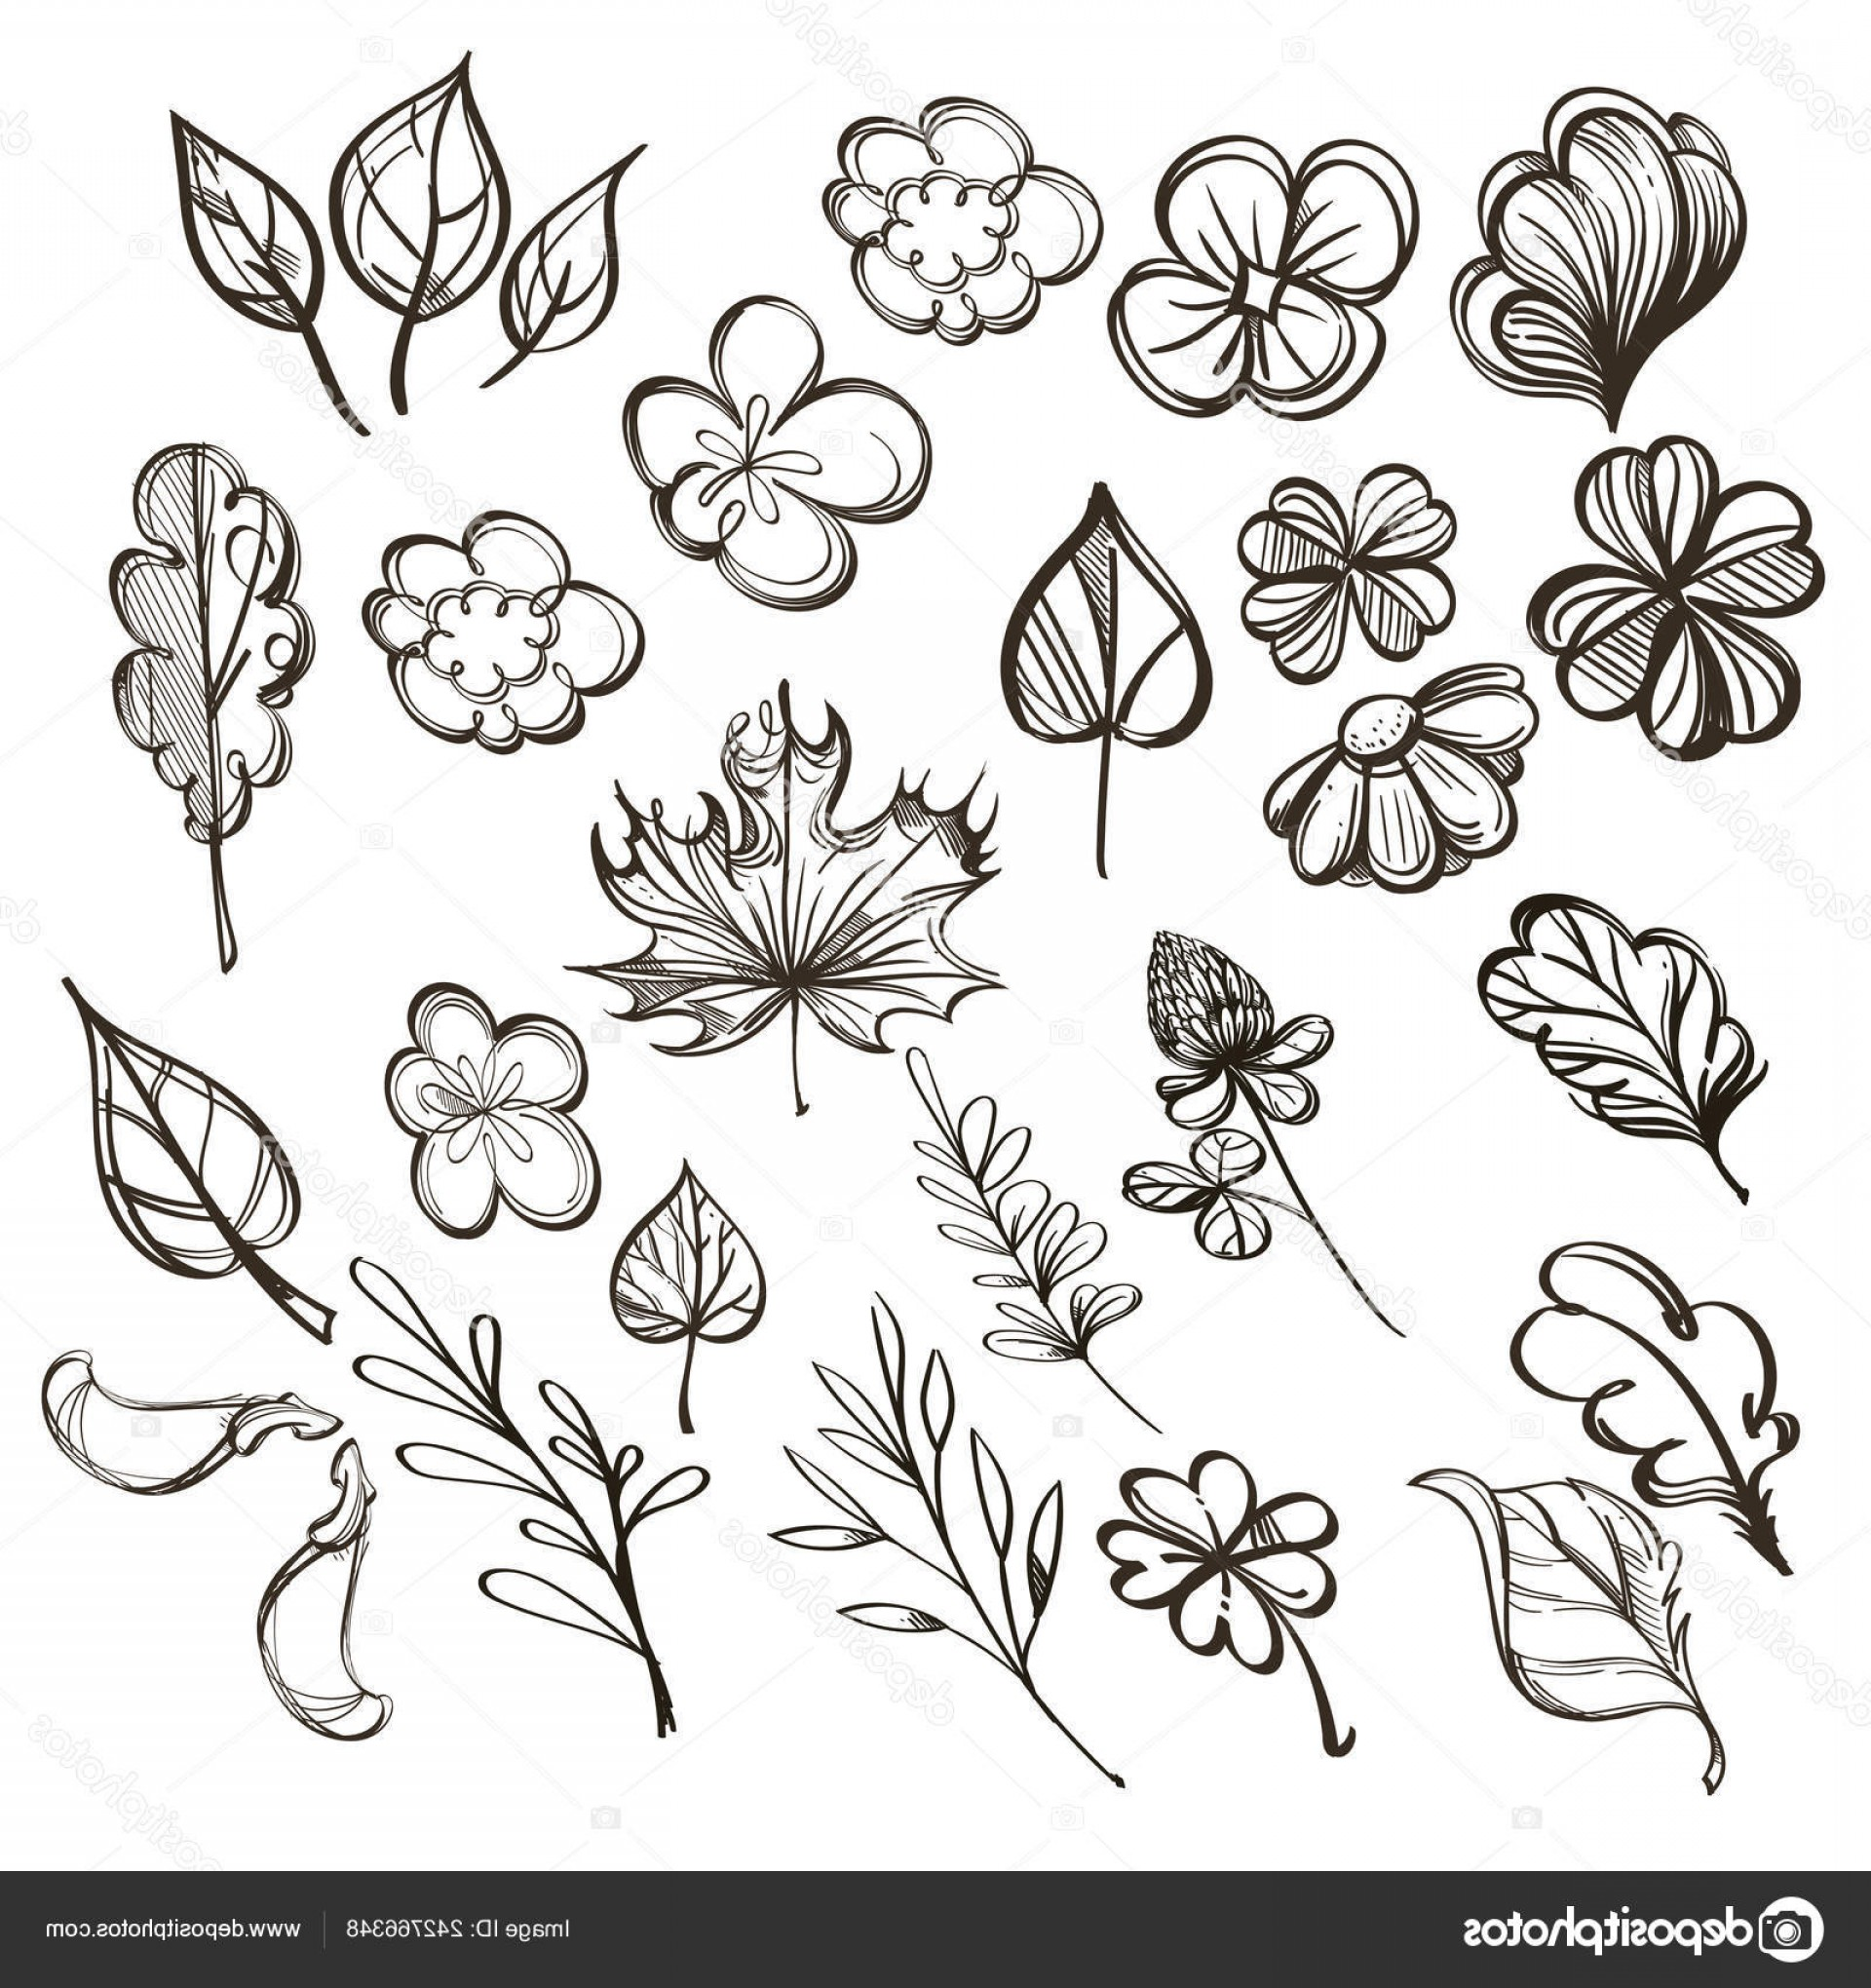 Wildflowers Outline Vector: Stock Illustration Set Botanical Graphics Wildflowers Herbs